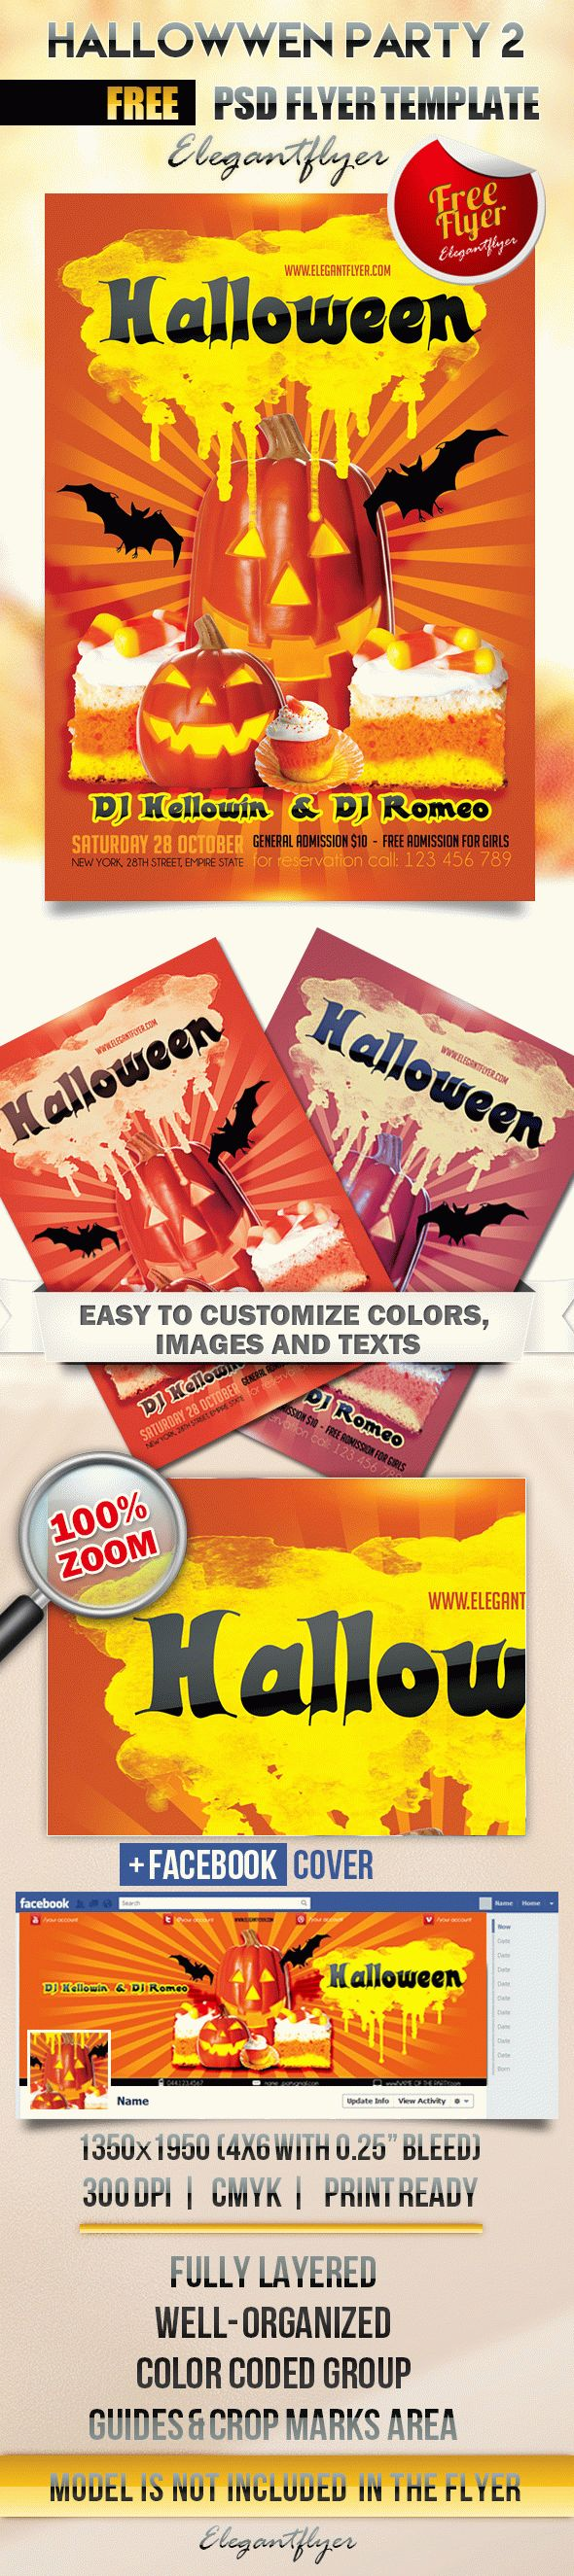 Hallowwen party 2 – Flyer PSD Template